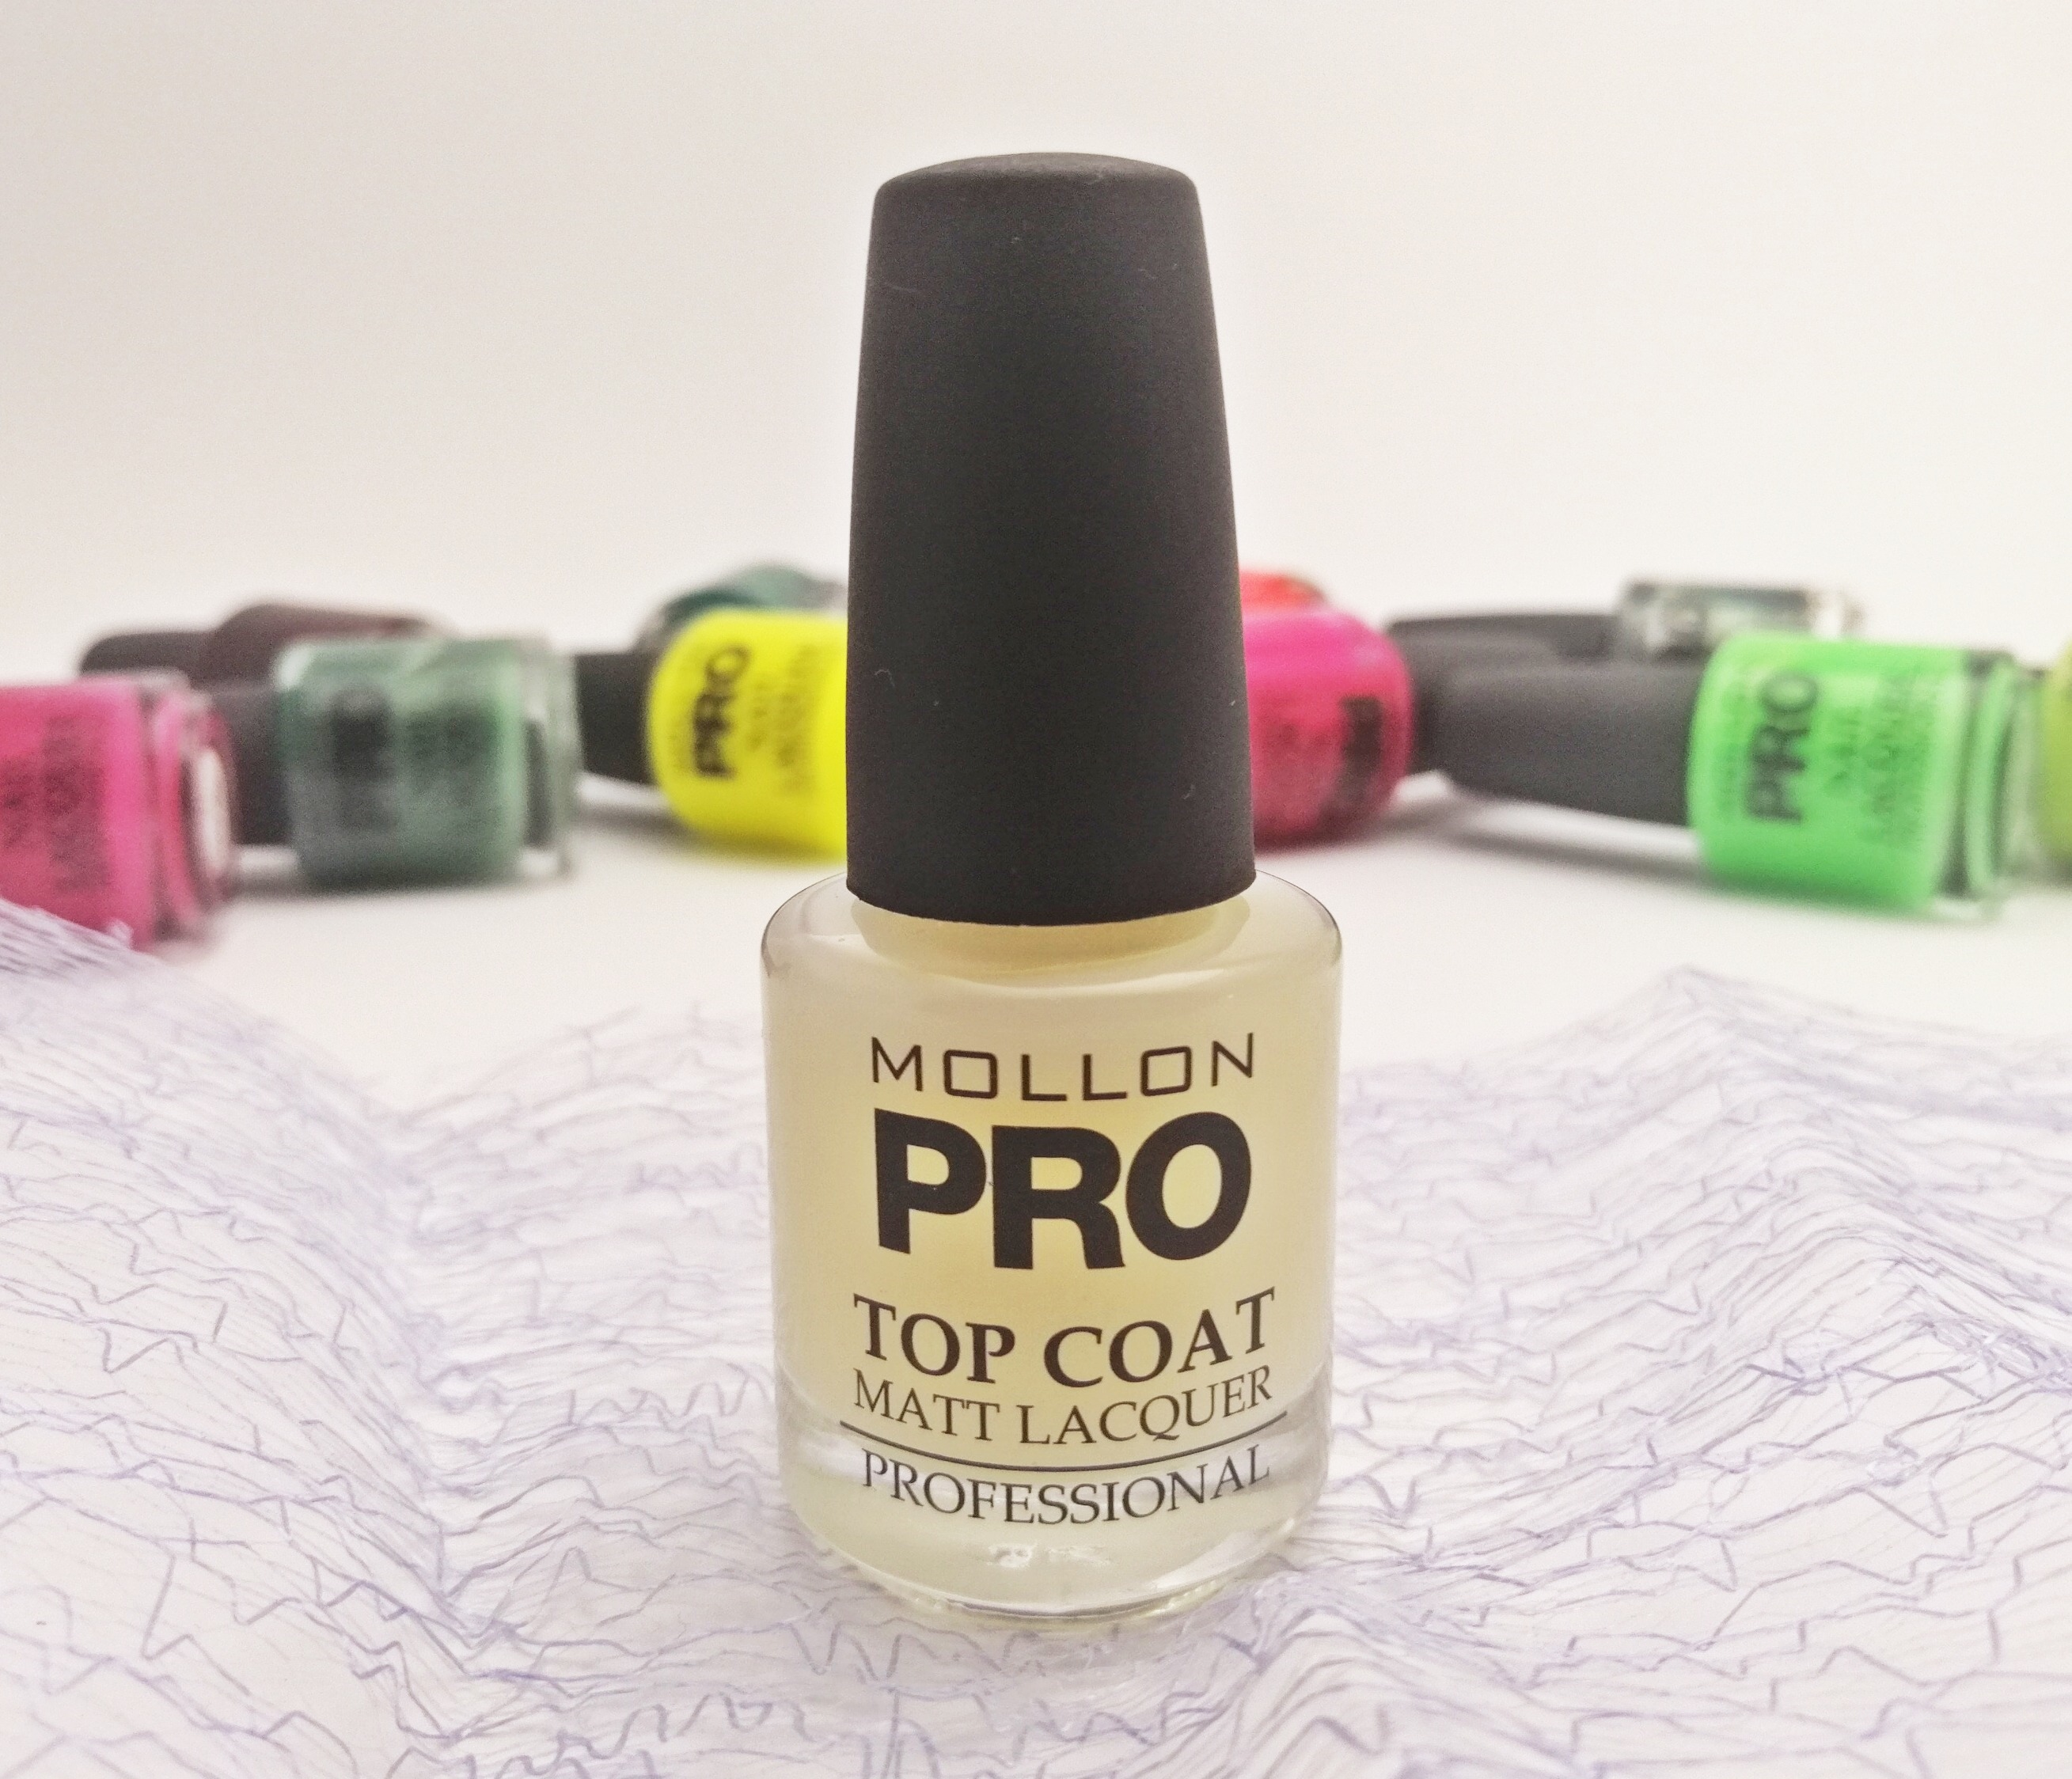 Mollon Pro: Matte top coat